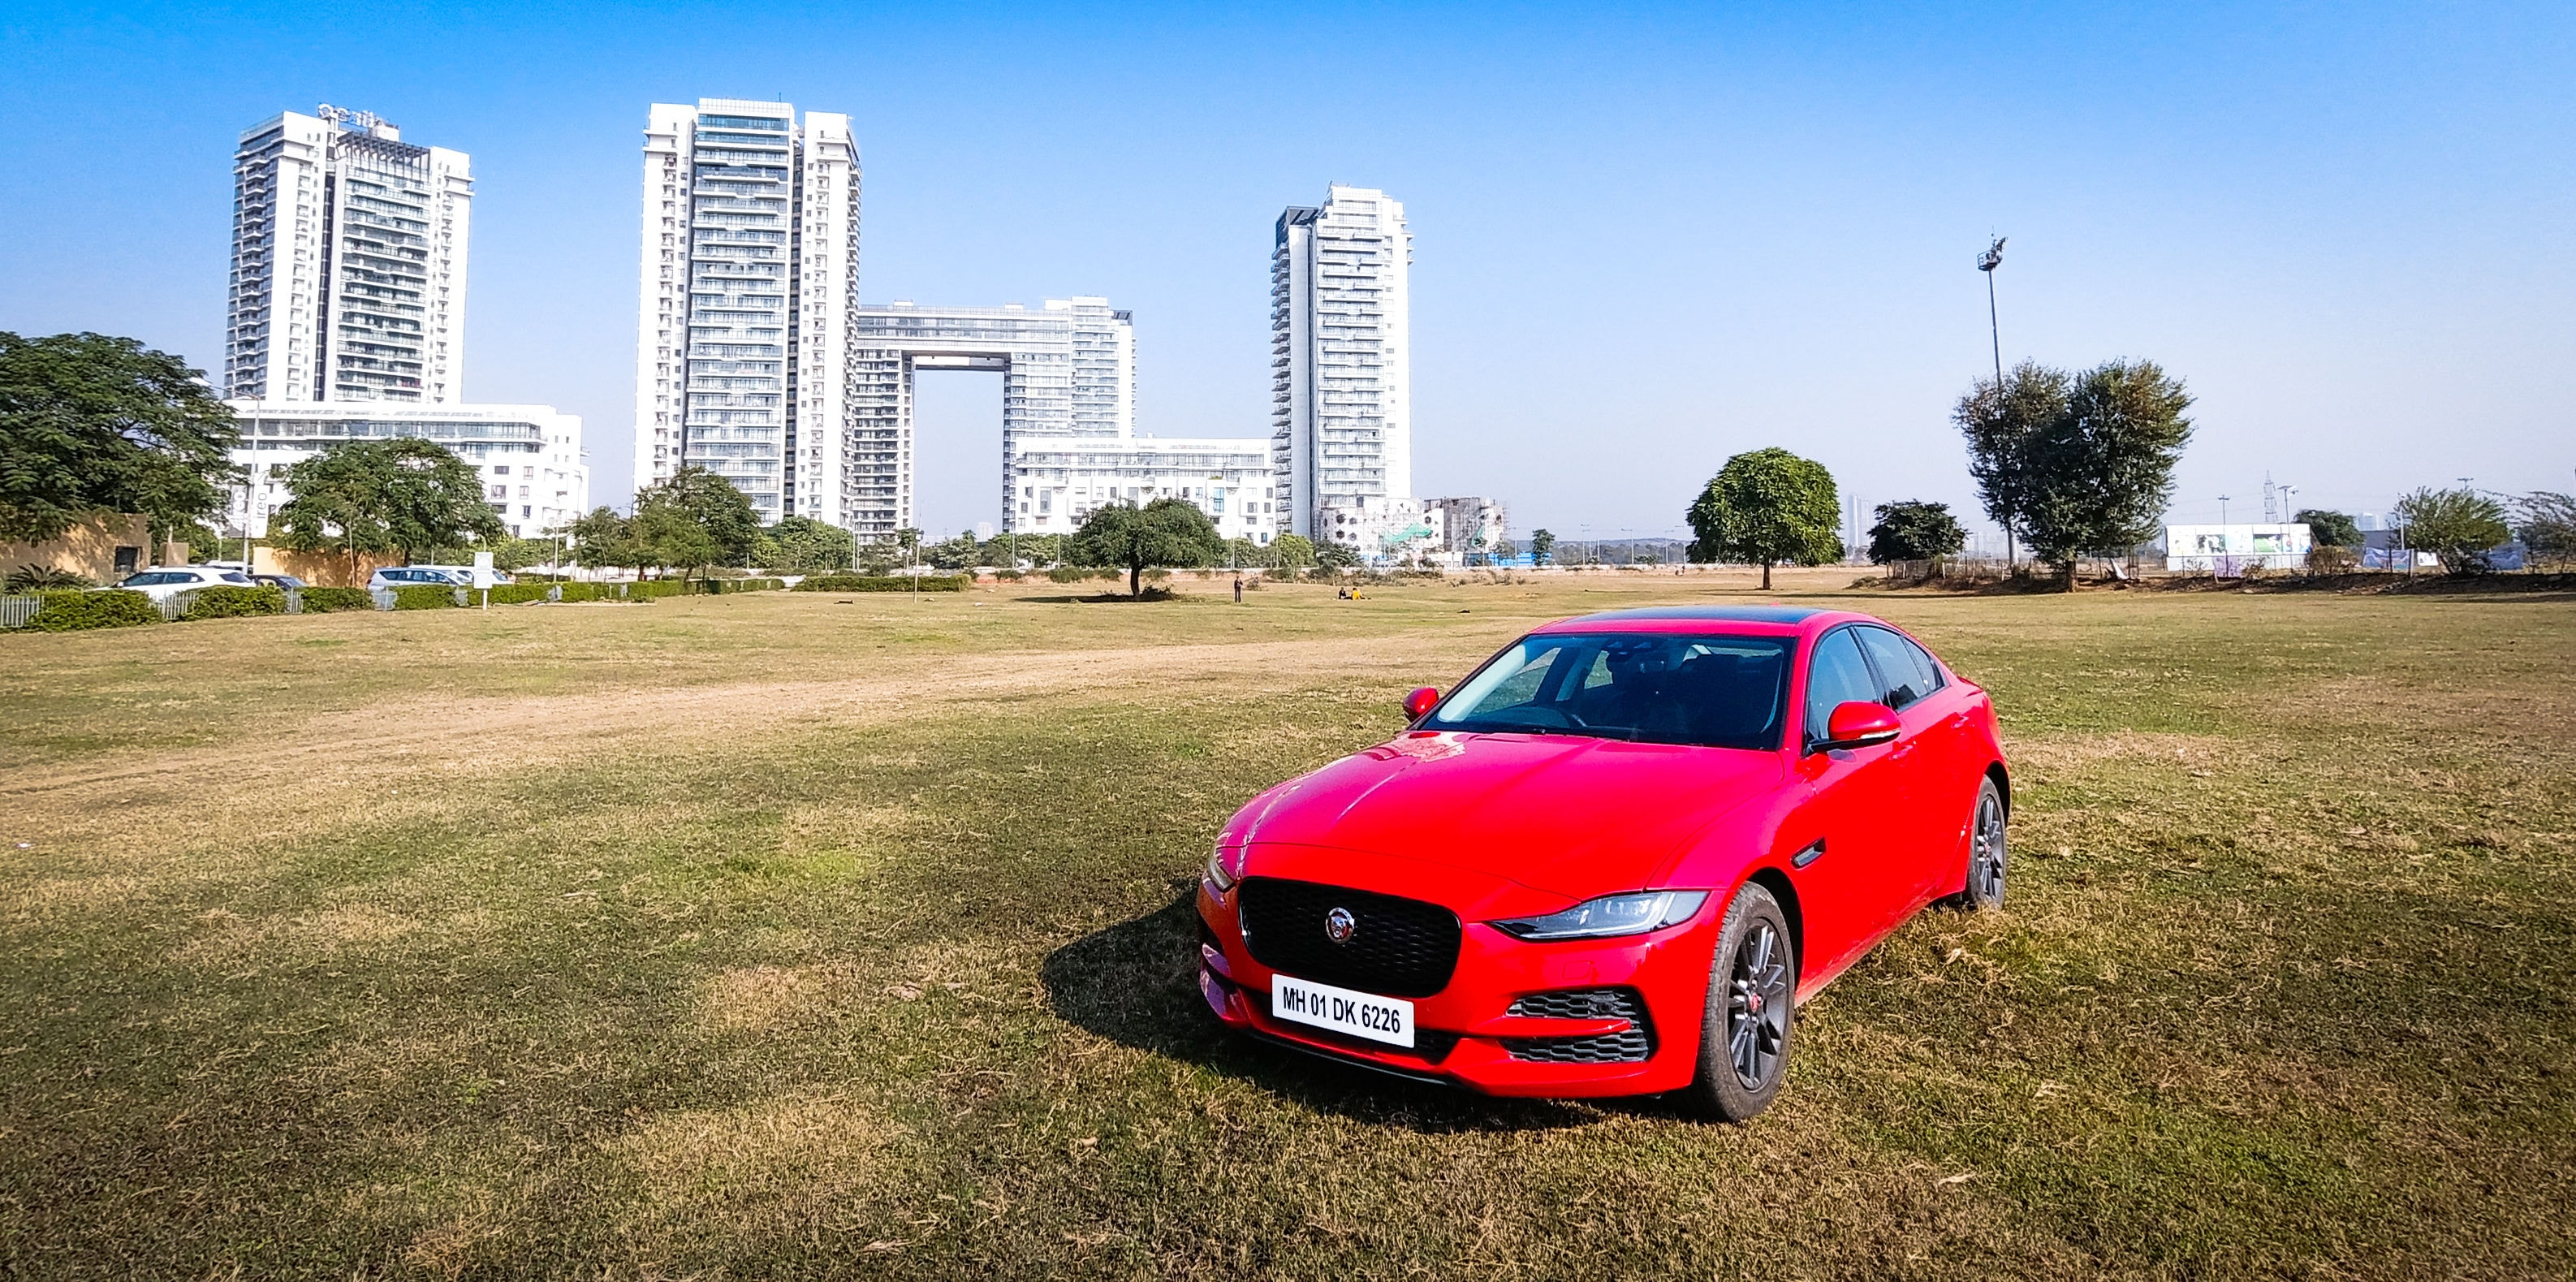 The XE 2020 now gets a reworked face with sleeker LED head lights, larger front grille and a more prominent bumper. (HT Auto photo)